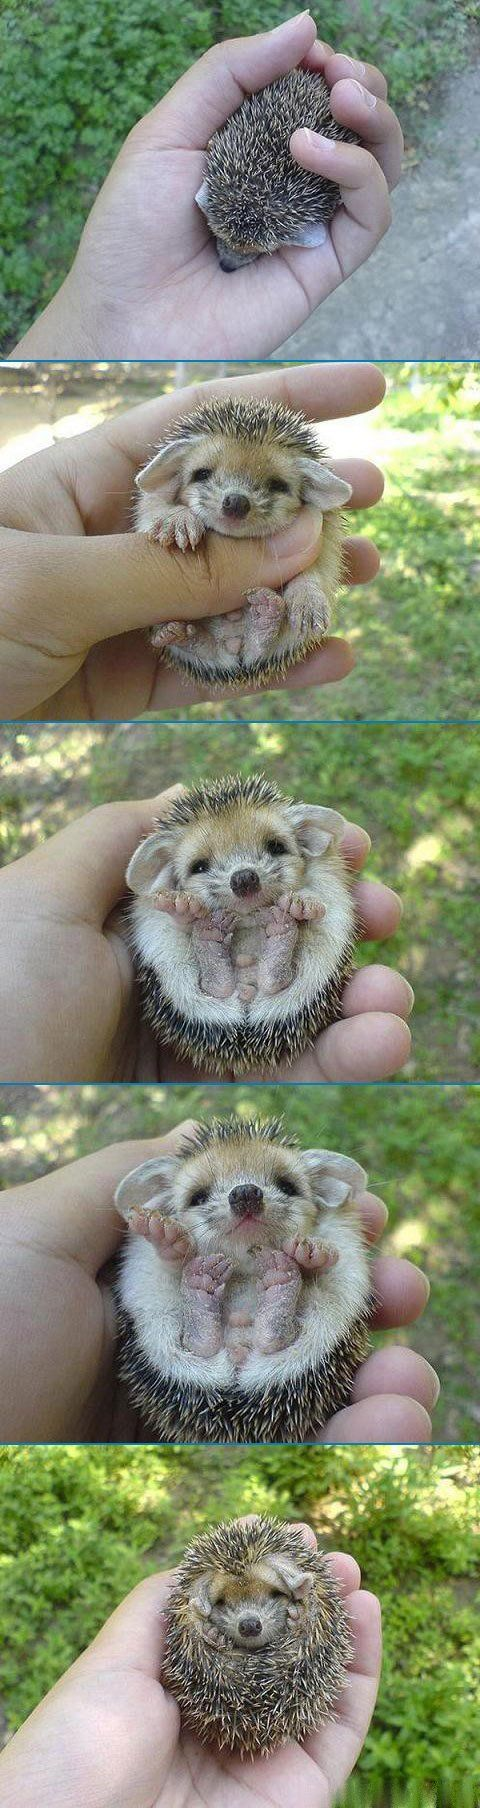 Baby hedgehog! I want one soooooo bad!! Forget this no animals in